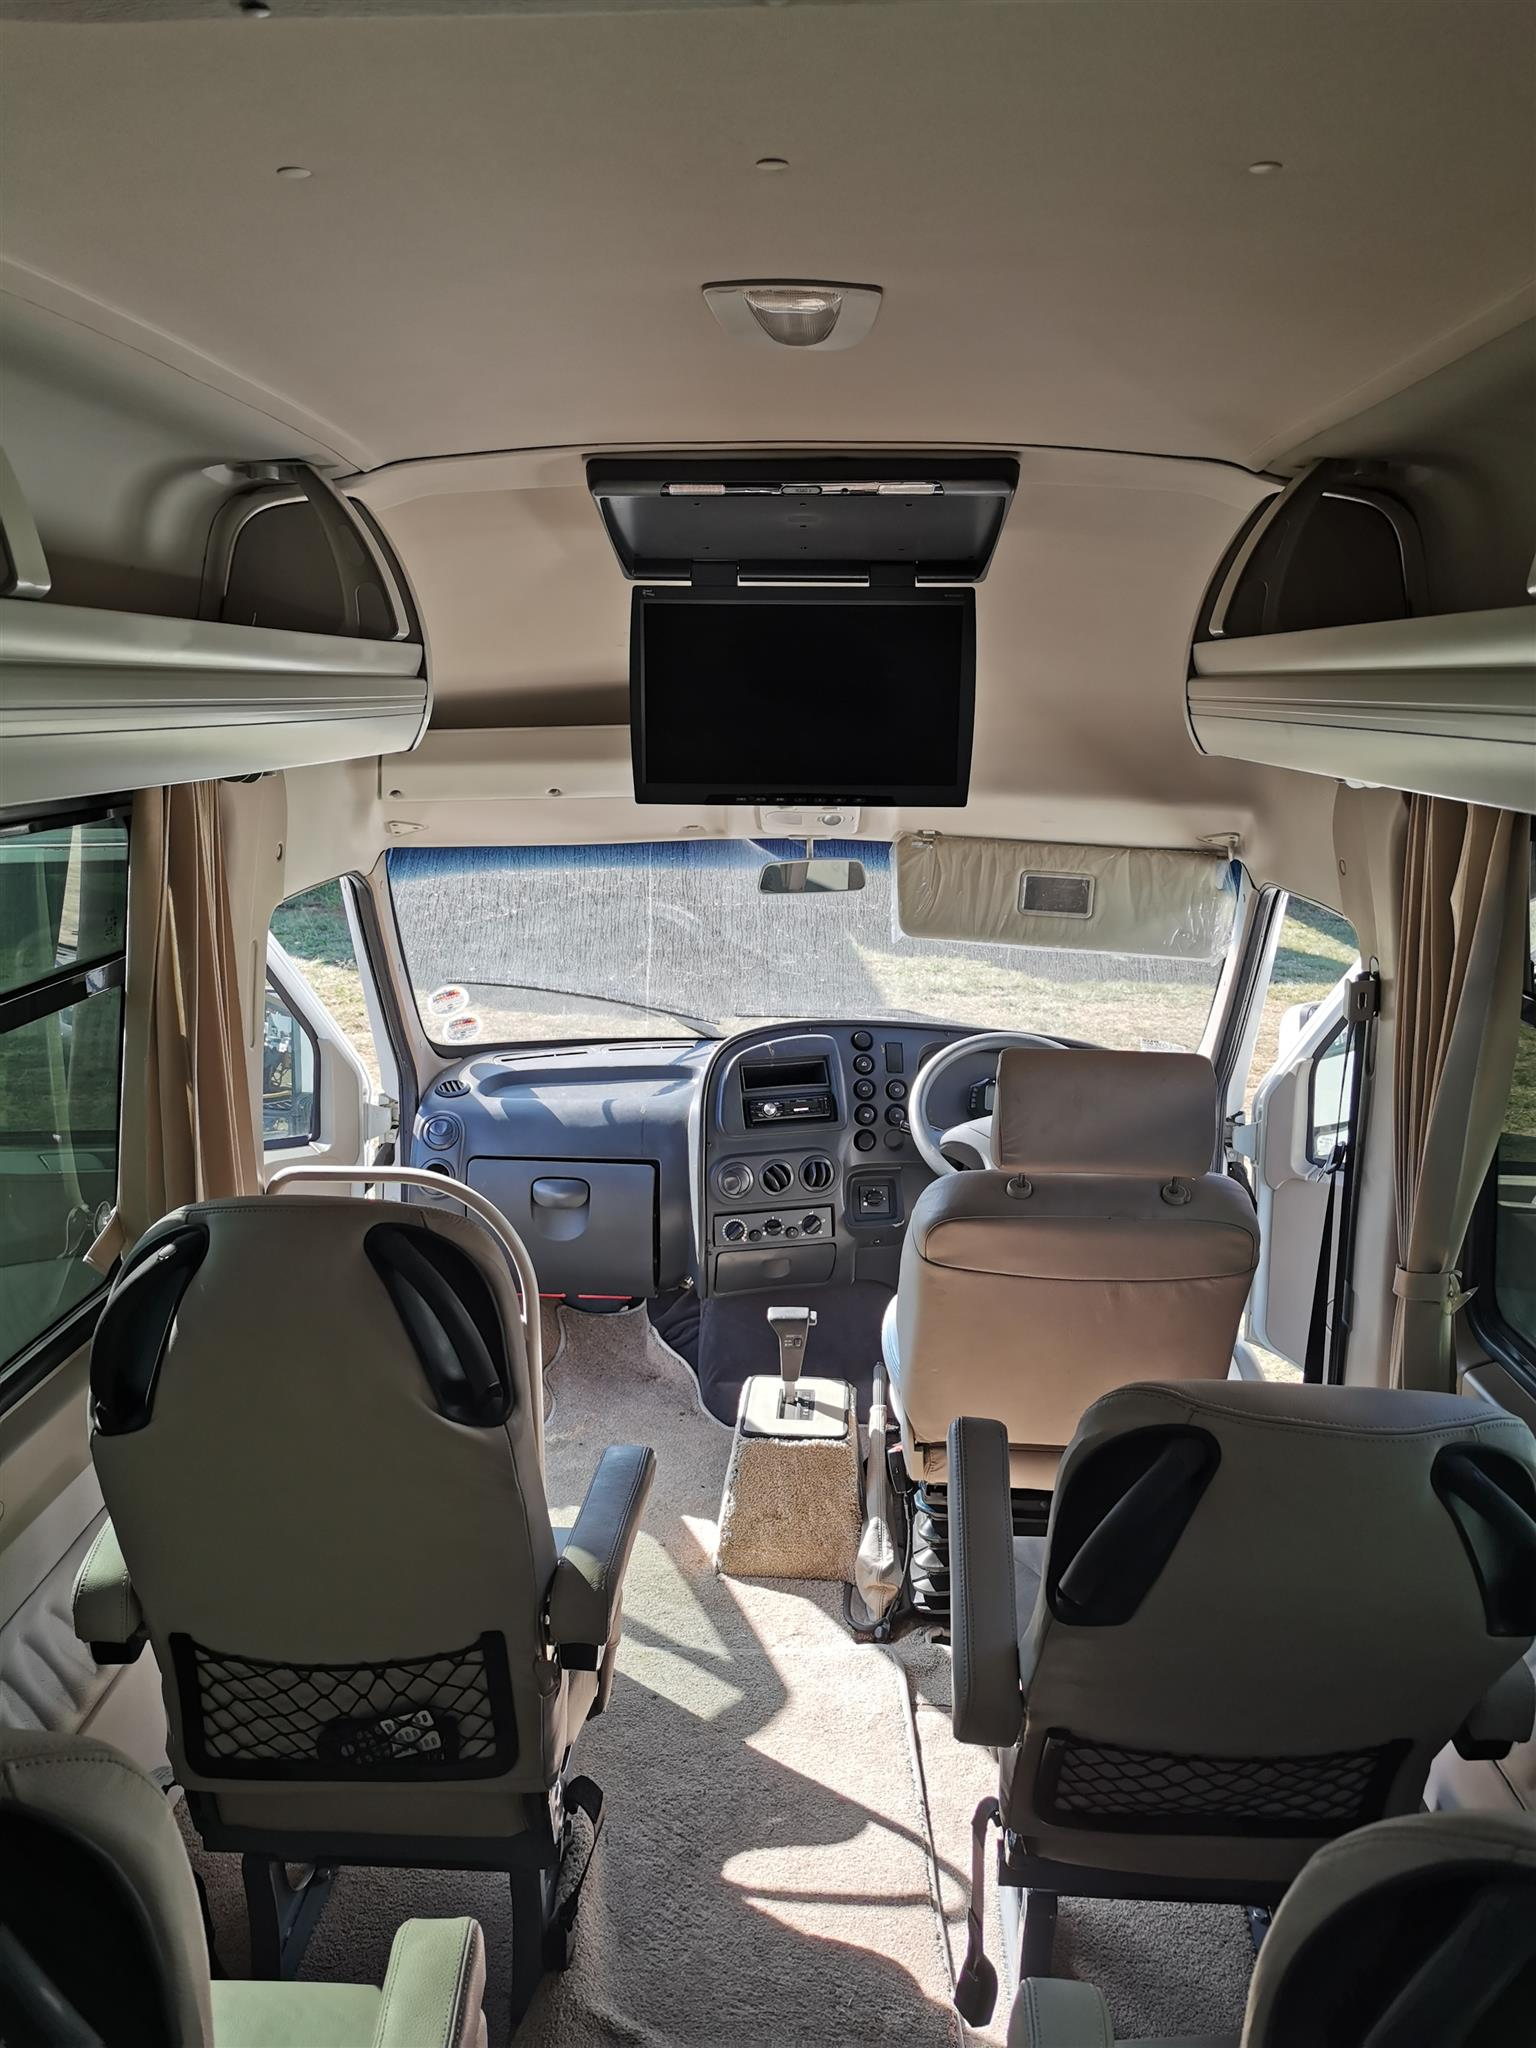 2011 Iveco Turbo Daily VIP (10 seater)